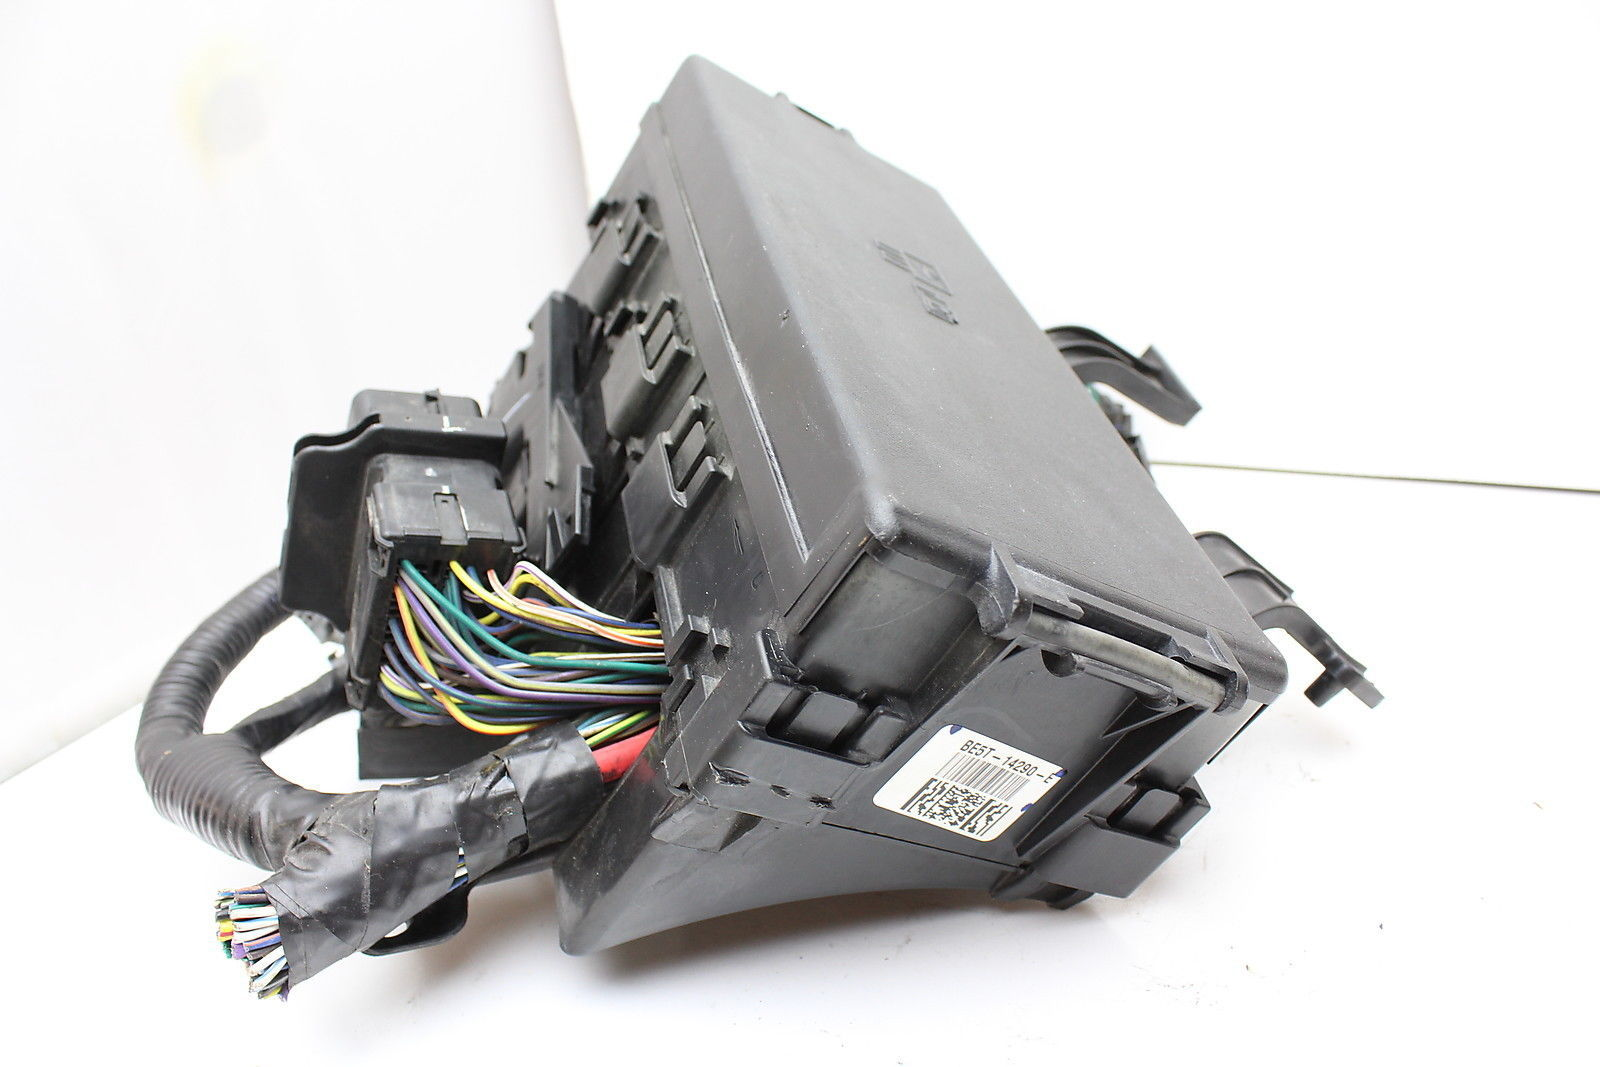 12 2012 Ford Fusion BE5T-14290-E Fusebox and 50 similar items. S l1600